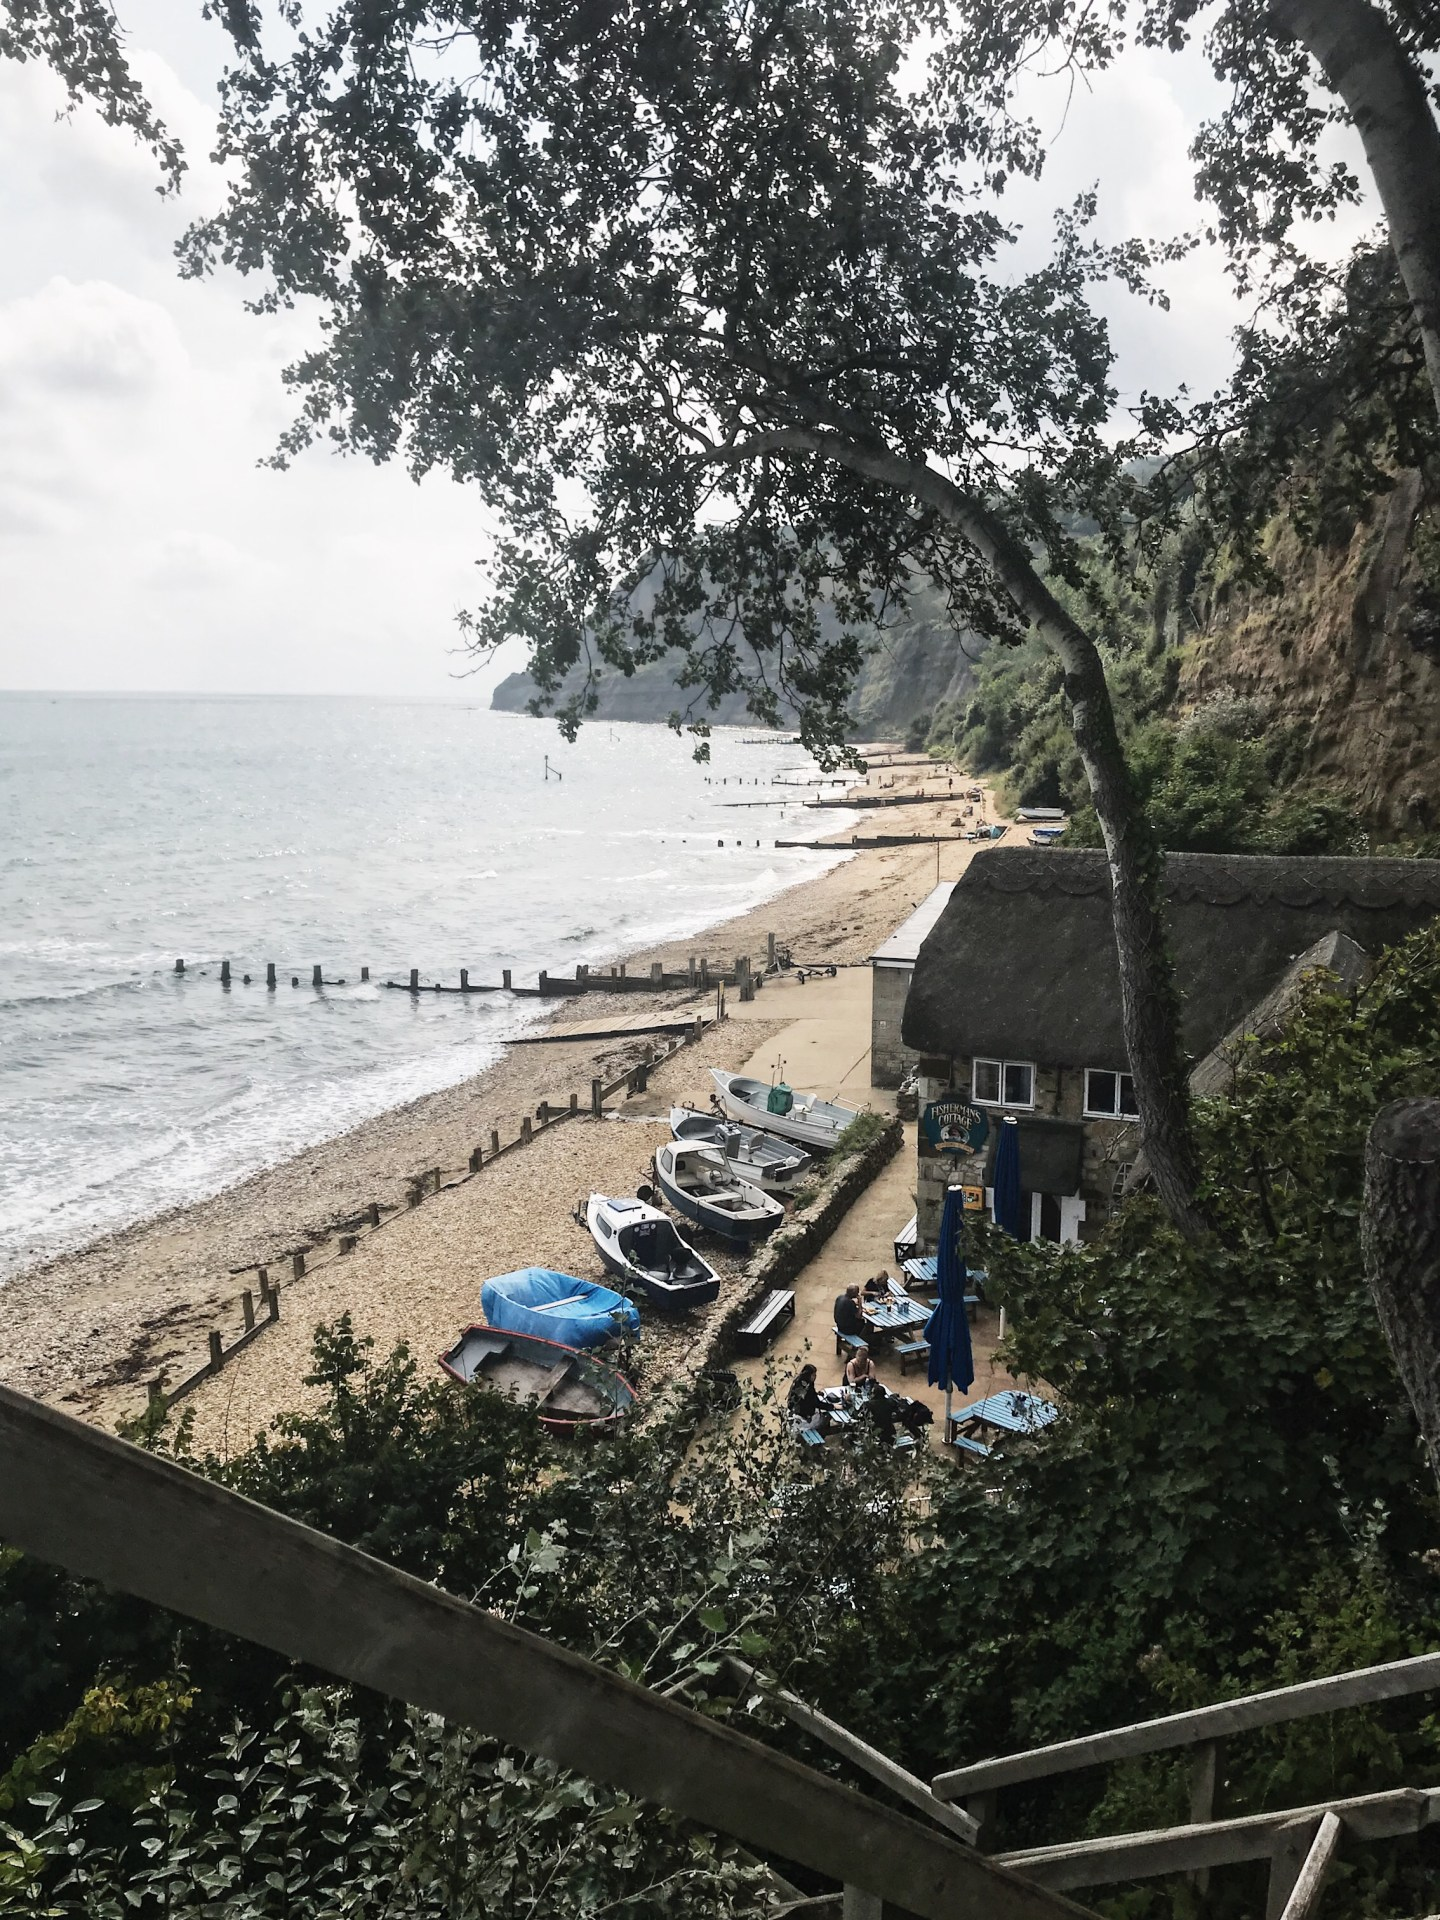 When I win at Instagram, you'll find me somewhere around here - Shanklin, Isle of Wight